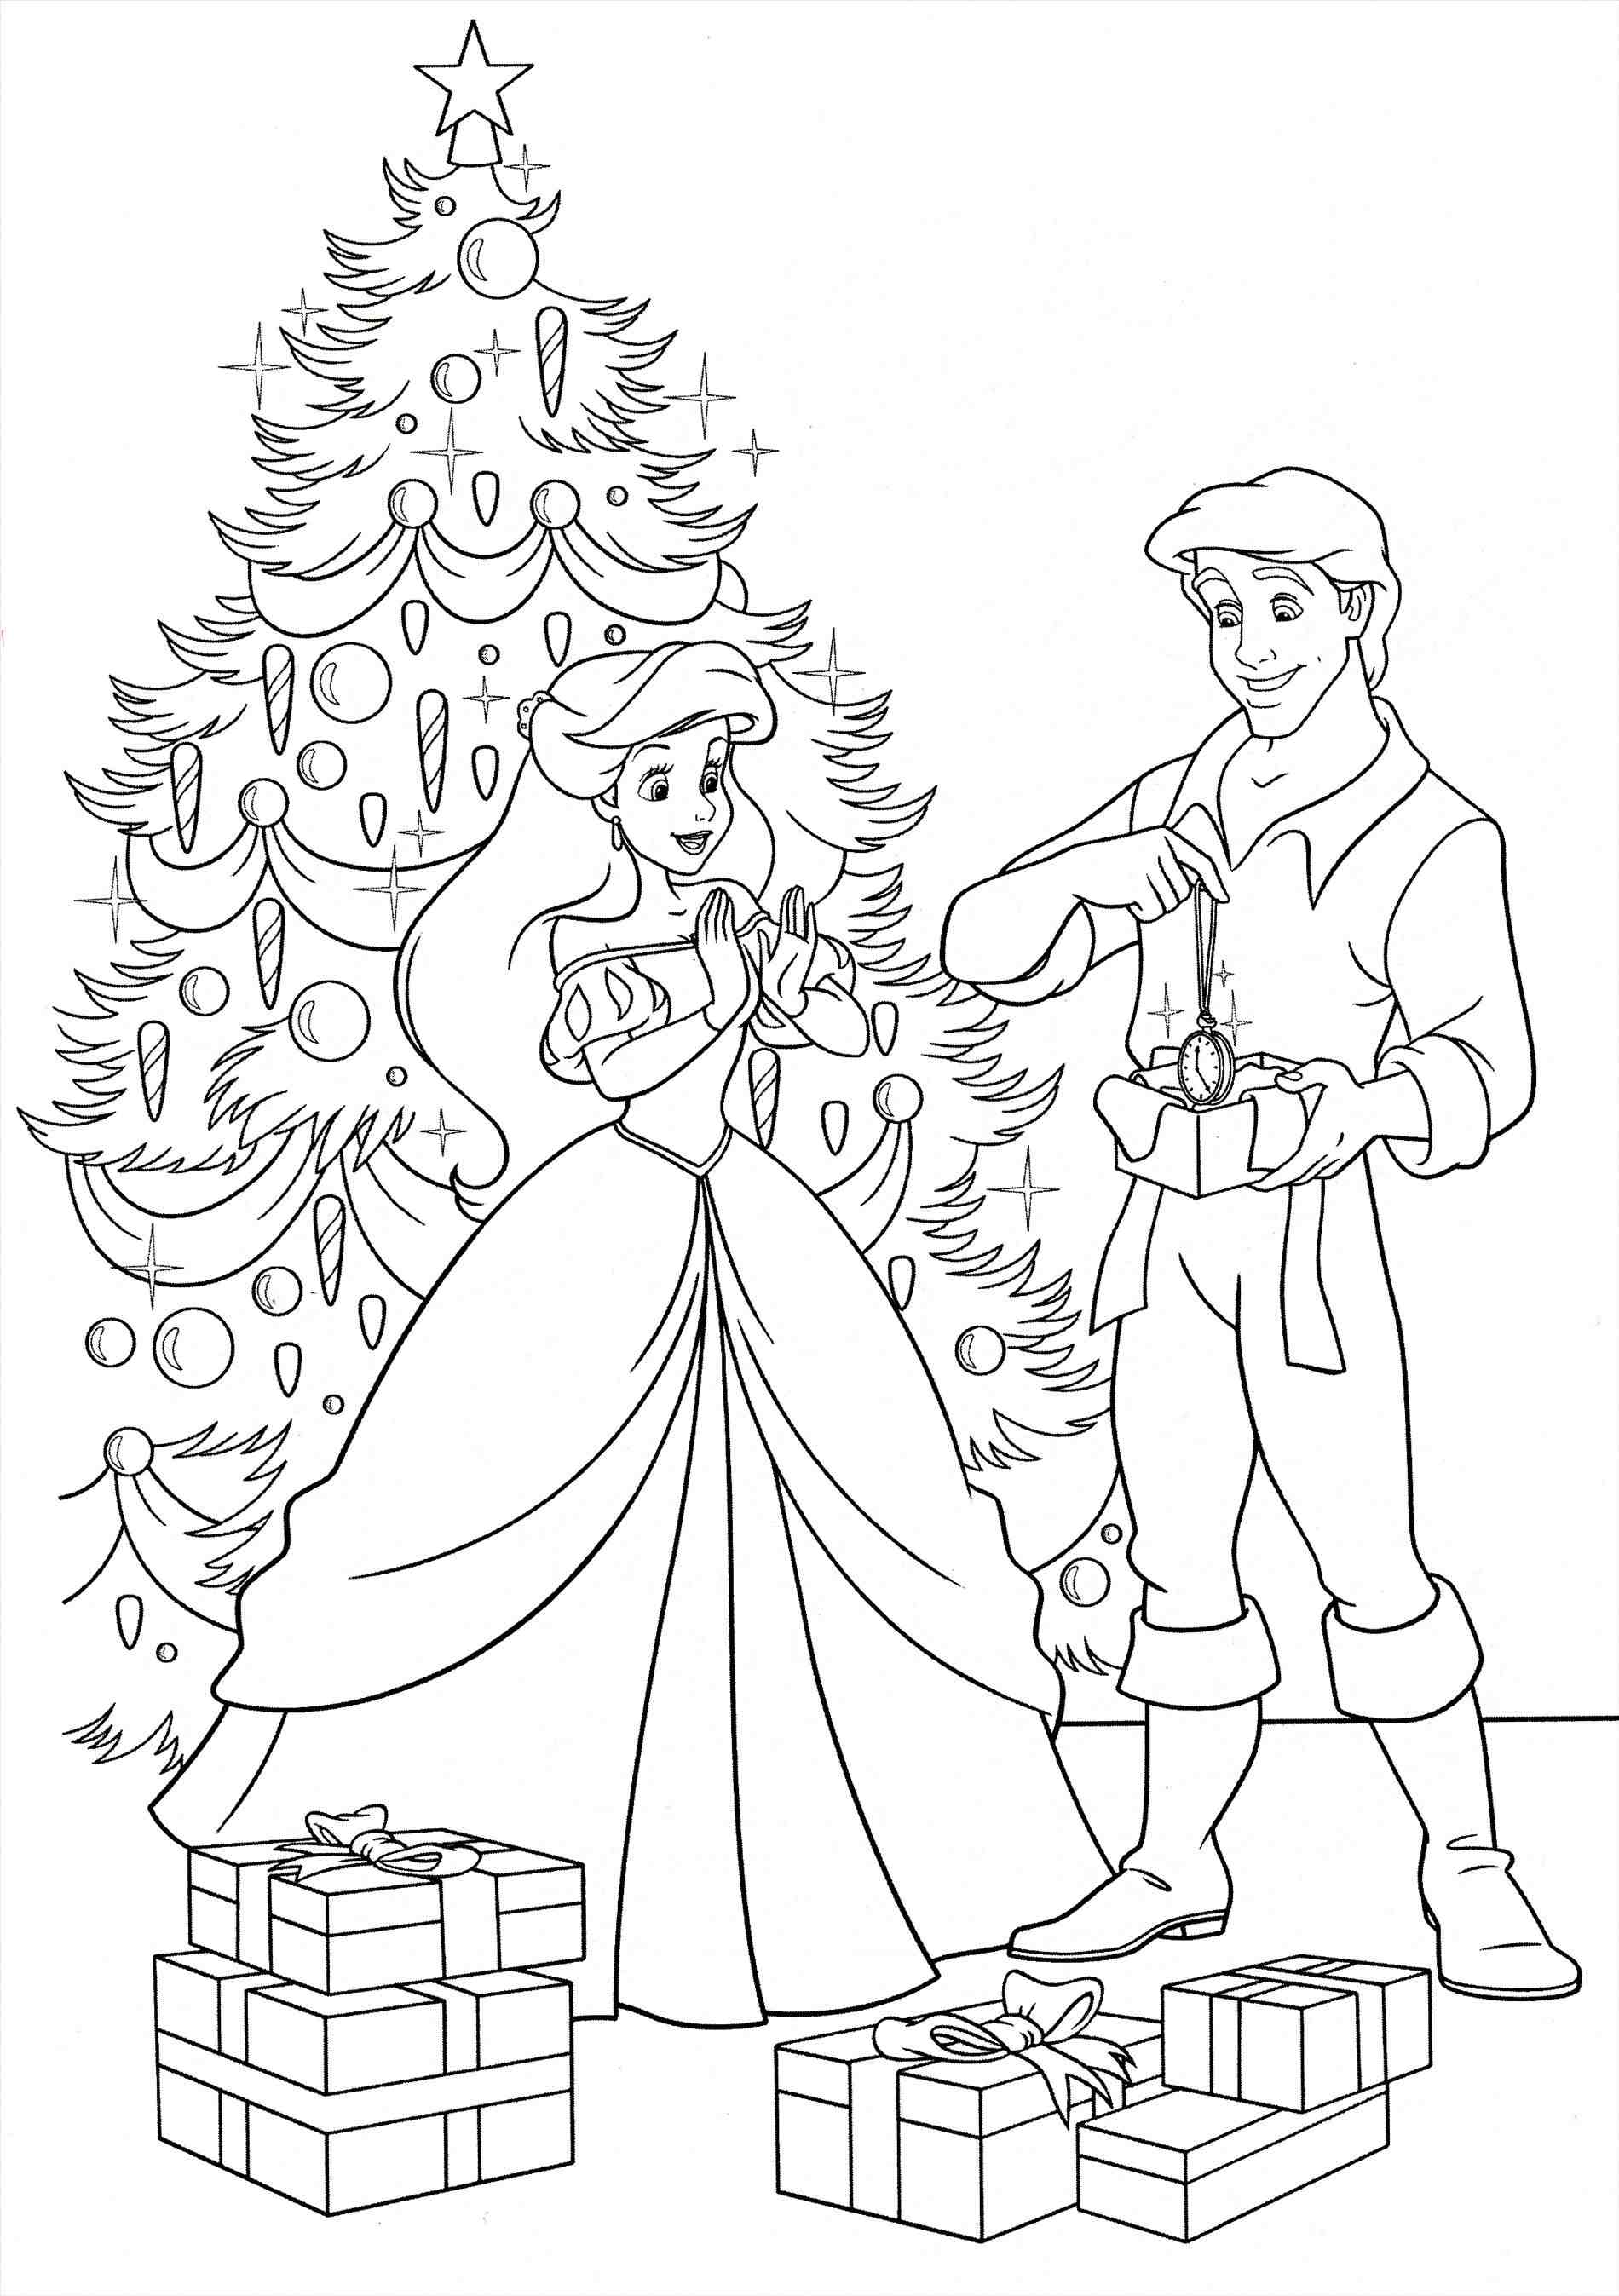 Free Printable Disney Frozen Christmas Coloring Pages With Fresh Princess Collection